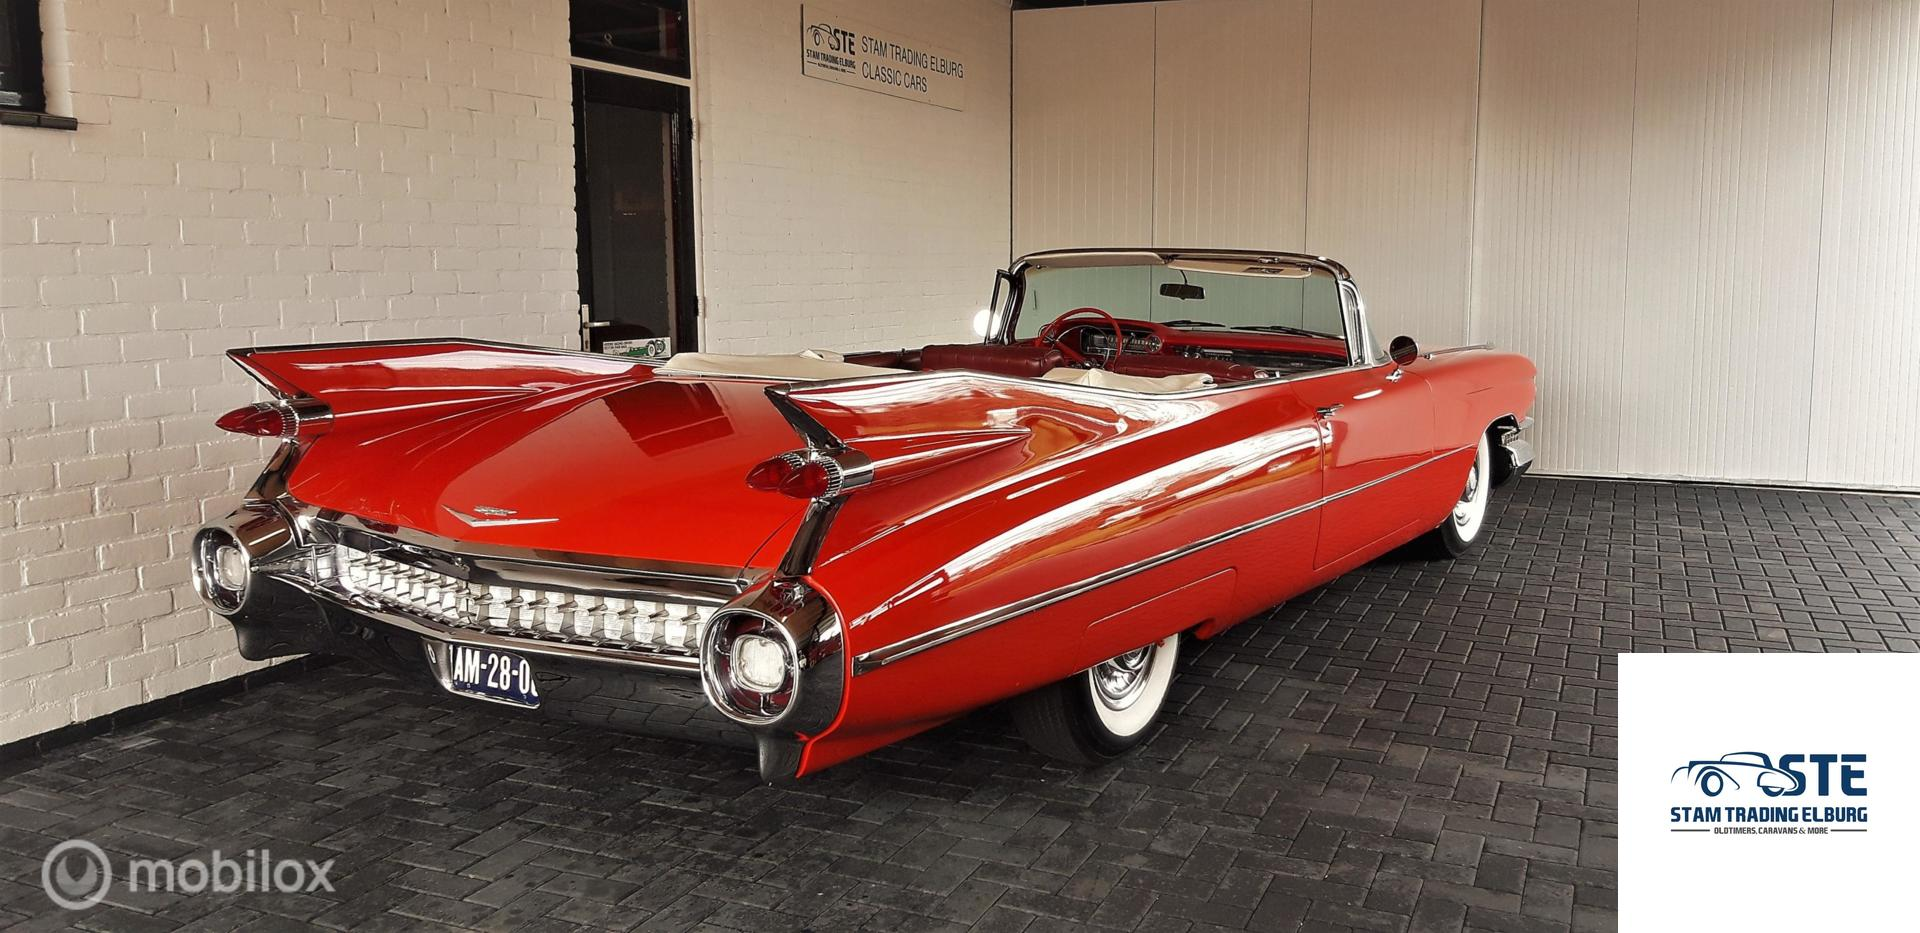 Cadillac Sixty-Two Convertible 62 series 1959